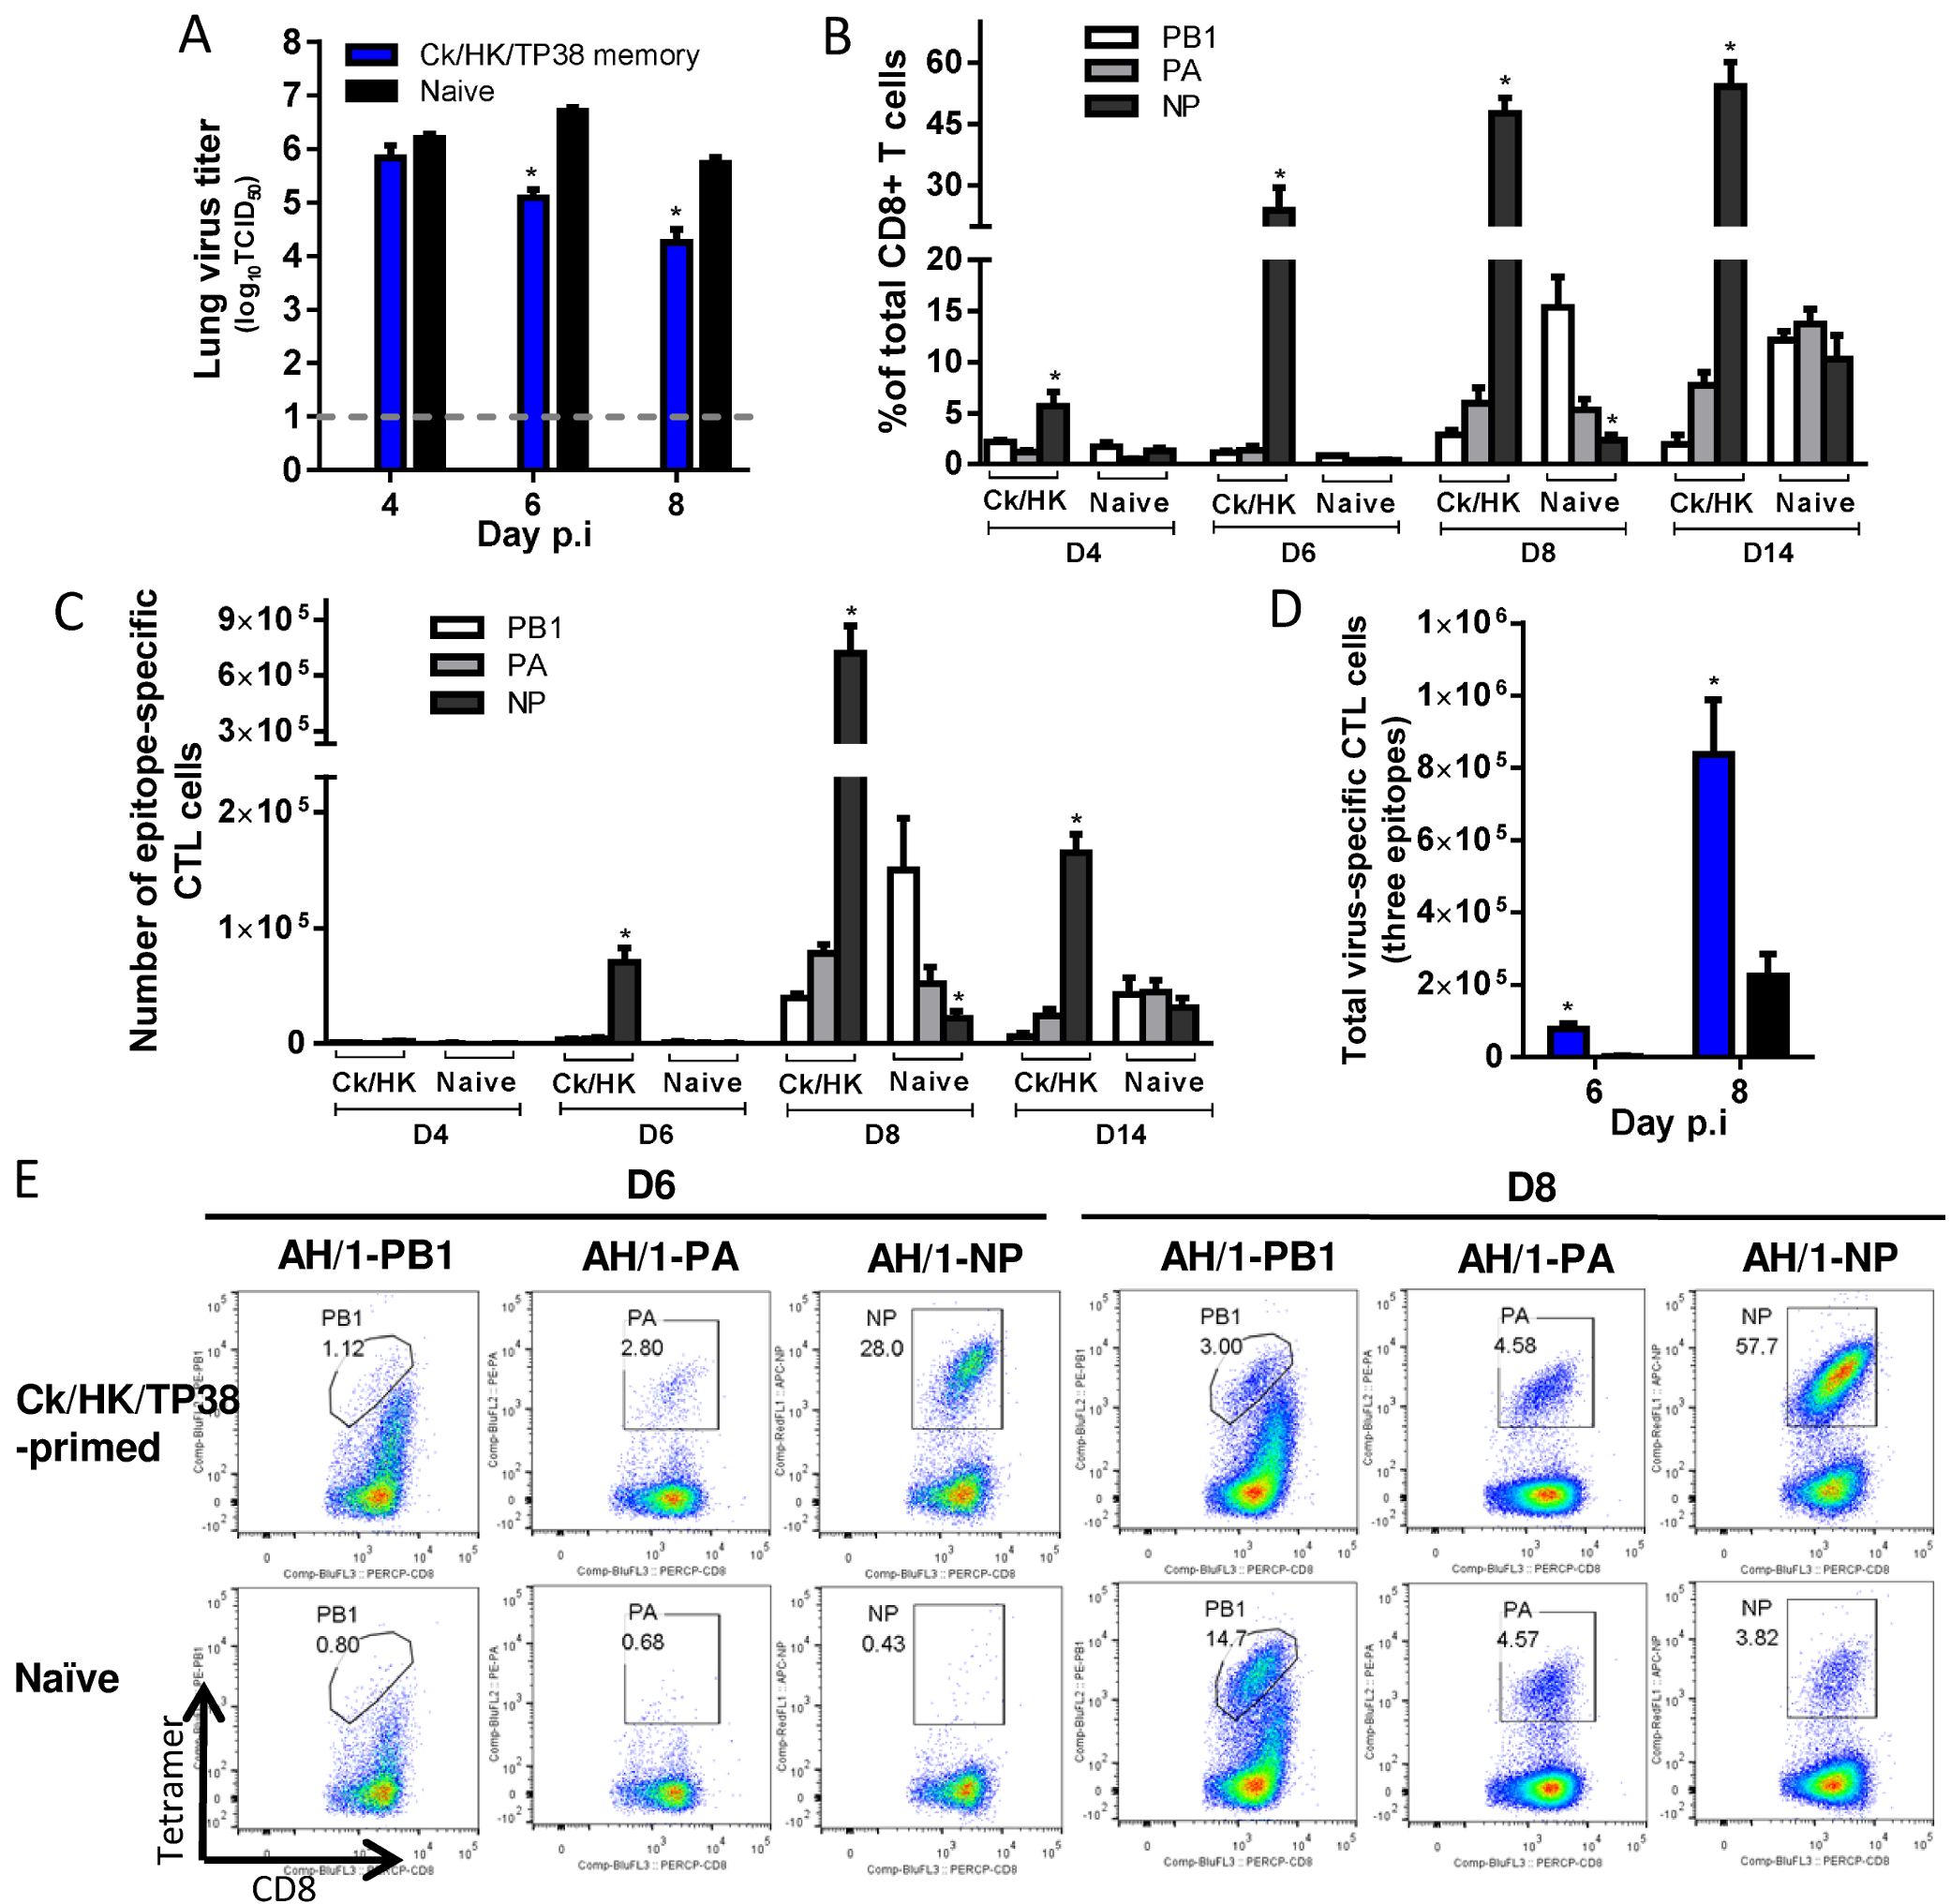 Comparing the primary and secondary CTL responses in naïve and Ck/HK/TP38(H9N2)-primed mice challenged with the H7N9 virus.